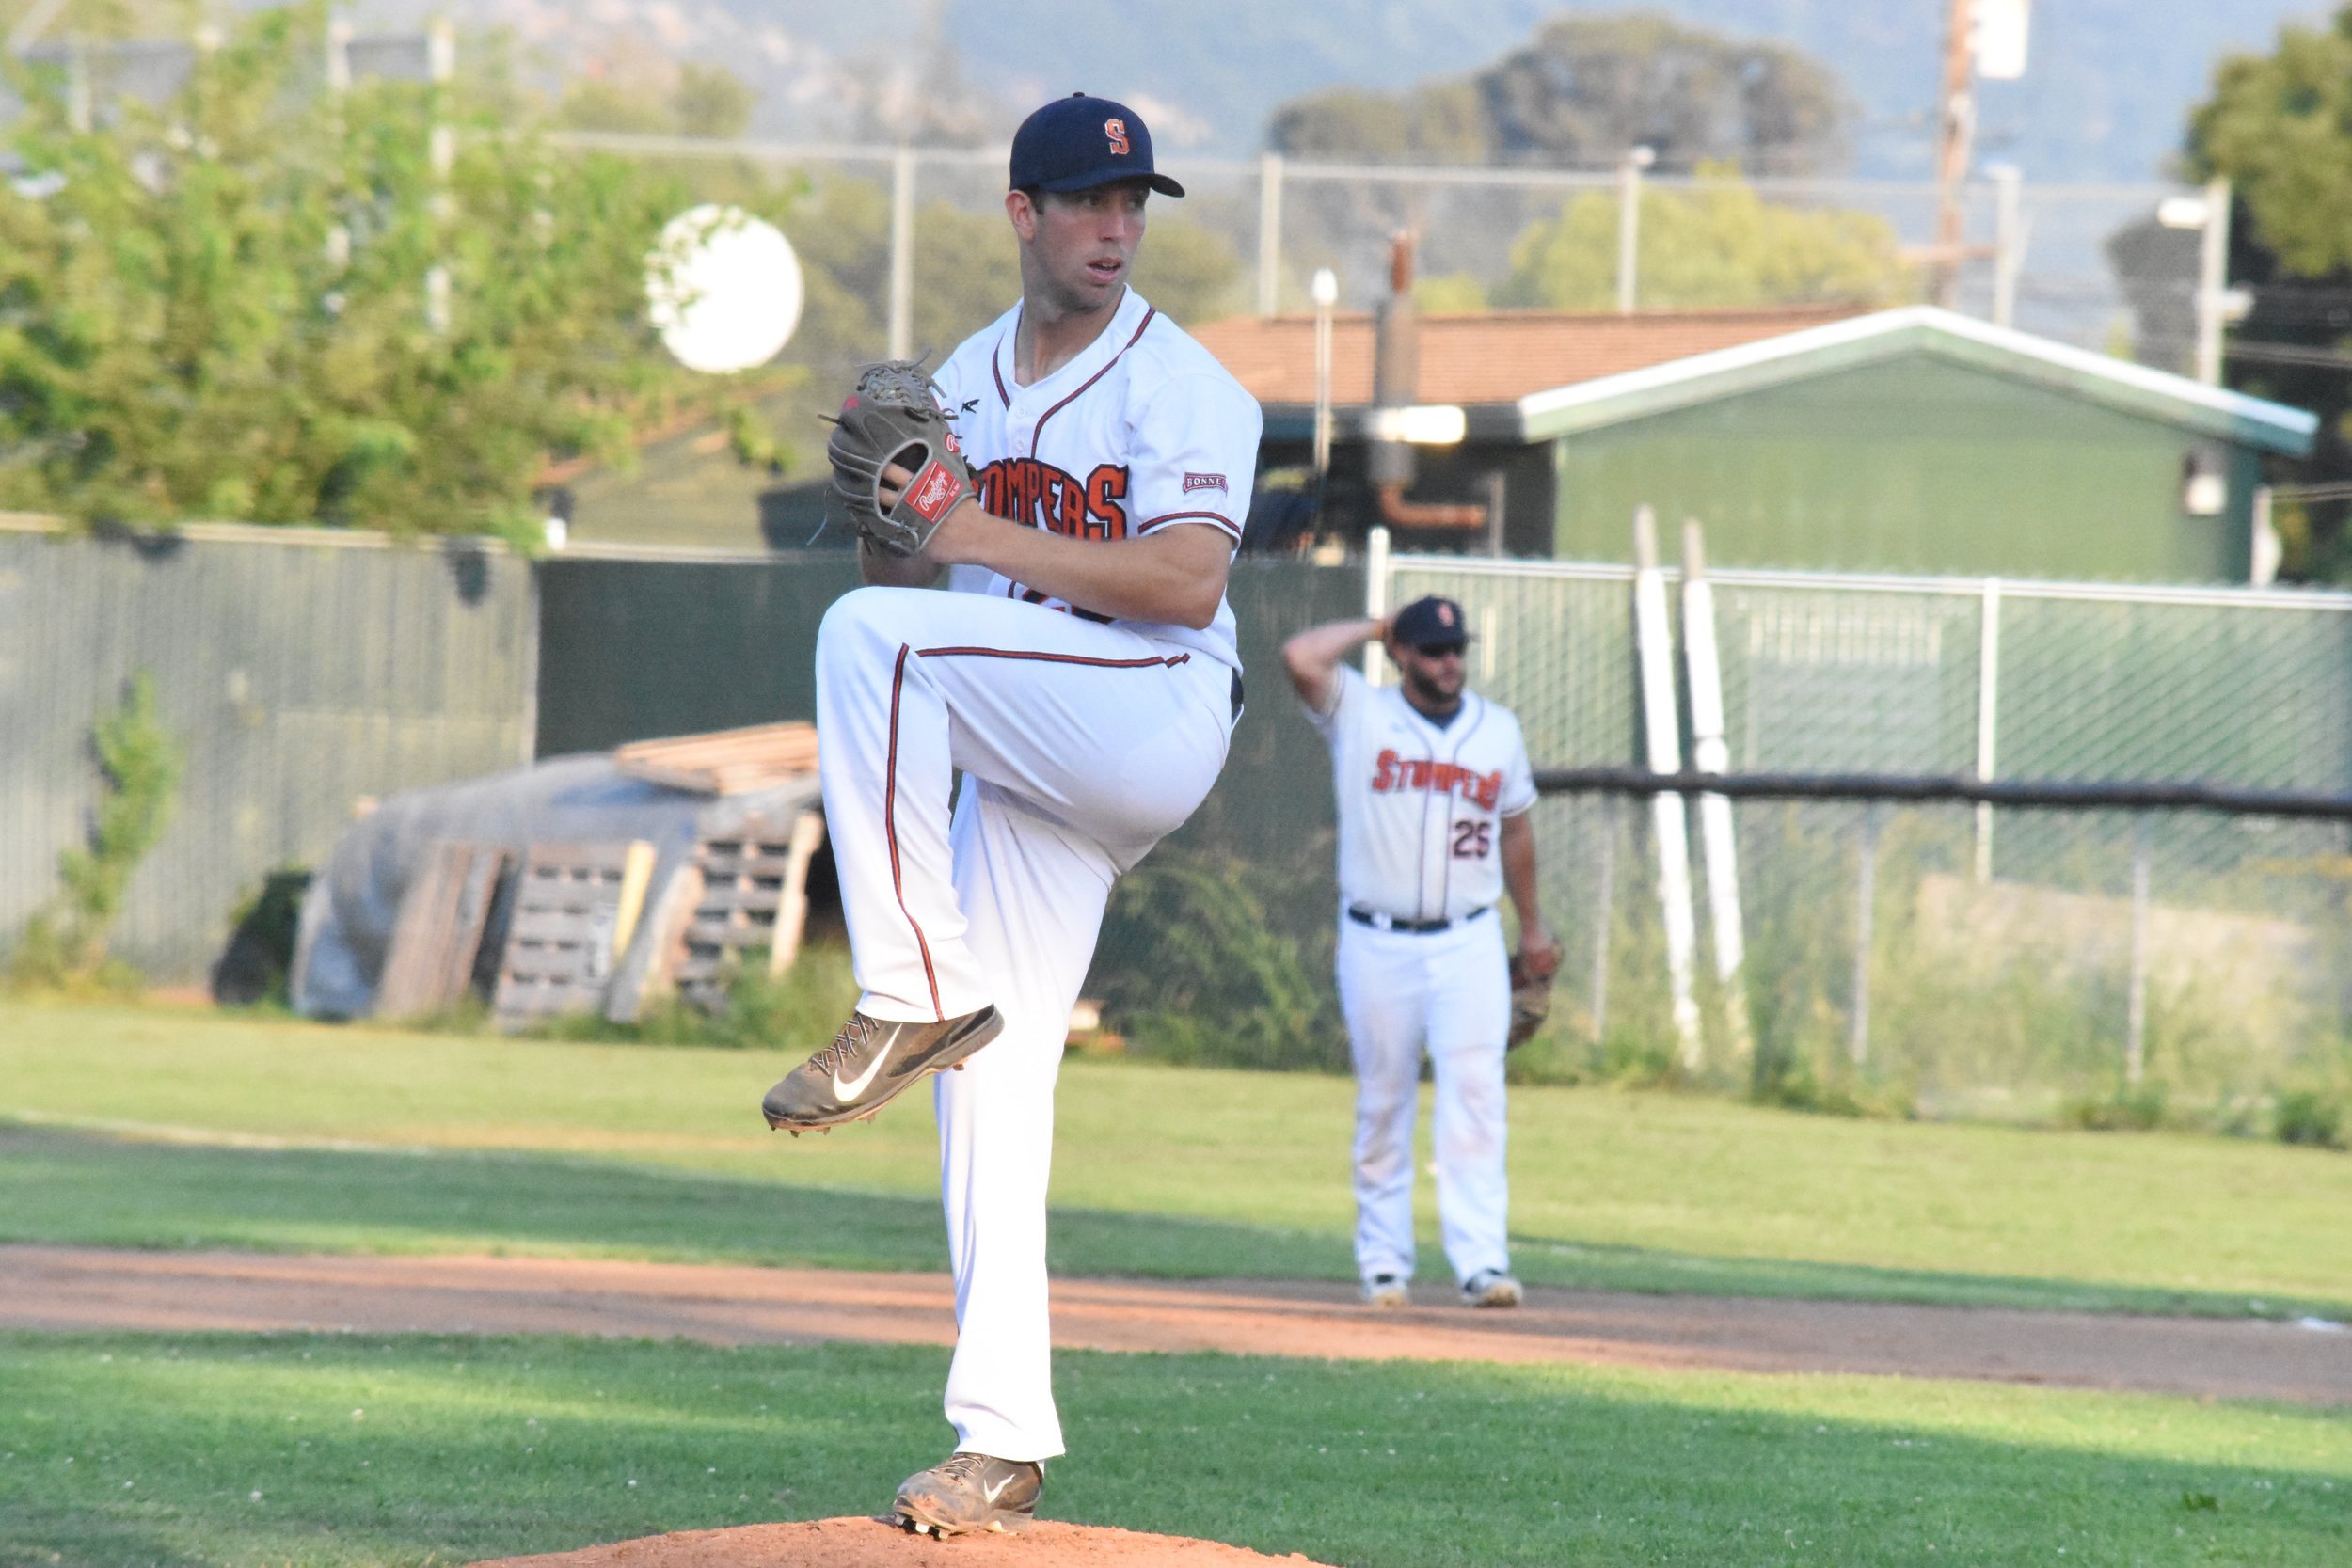 Starter Tyler Garkow struck out eight in Friday's 9-3 win over the Pittsburg Diamonds to give the Stompers back their spot alone at the top of the Pacific Association standings. (James W. Toy III / Sonoma Stompers)